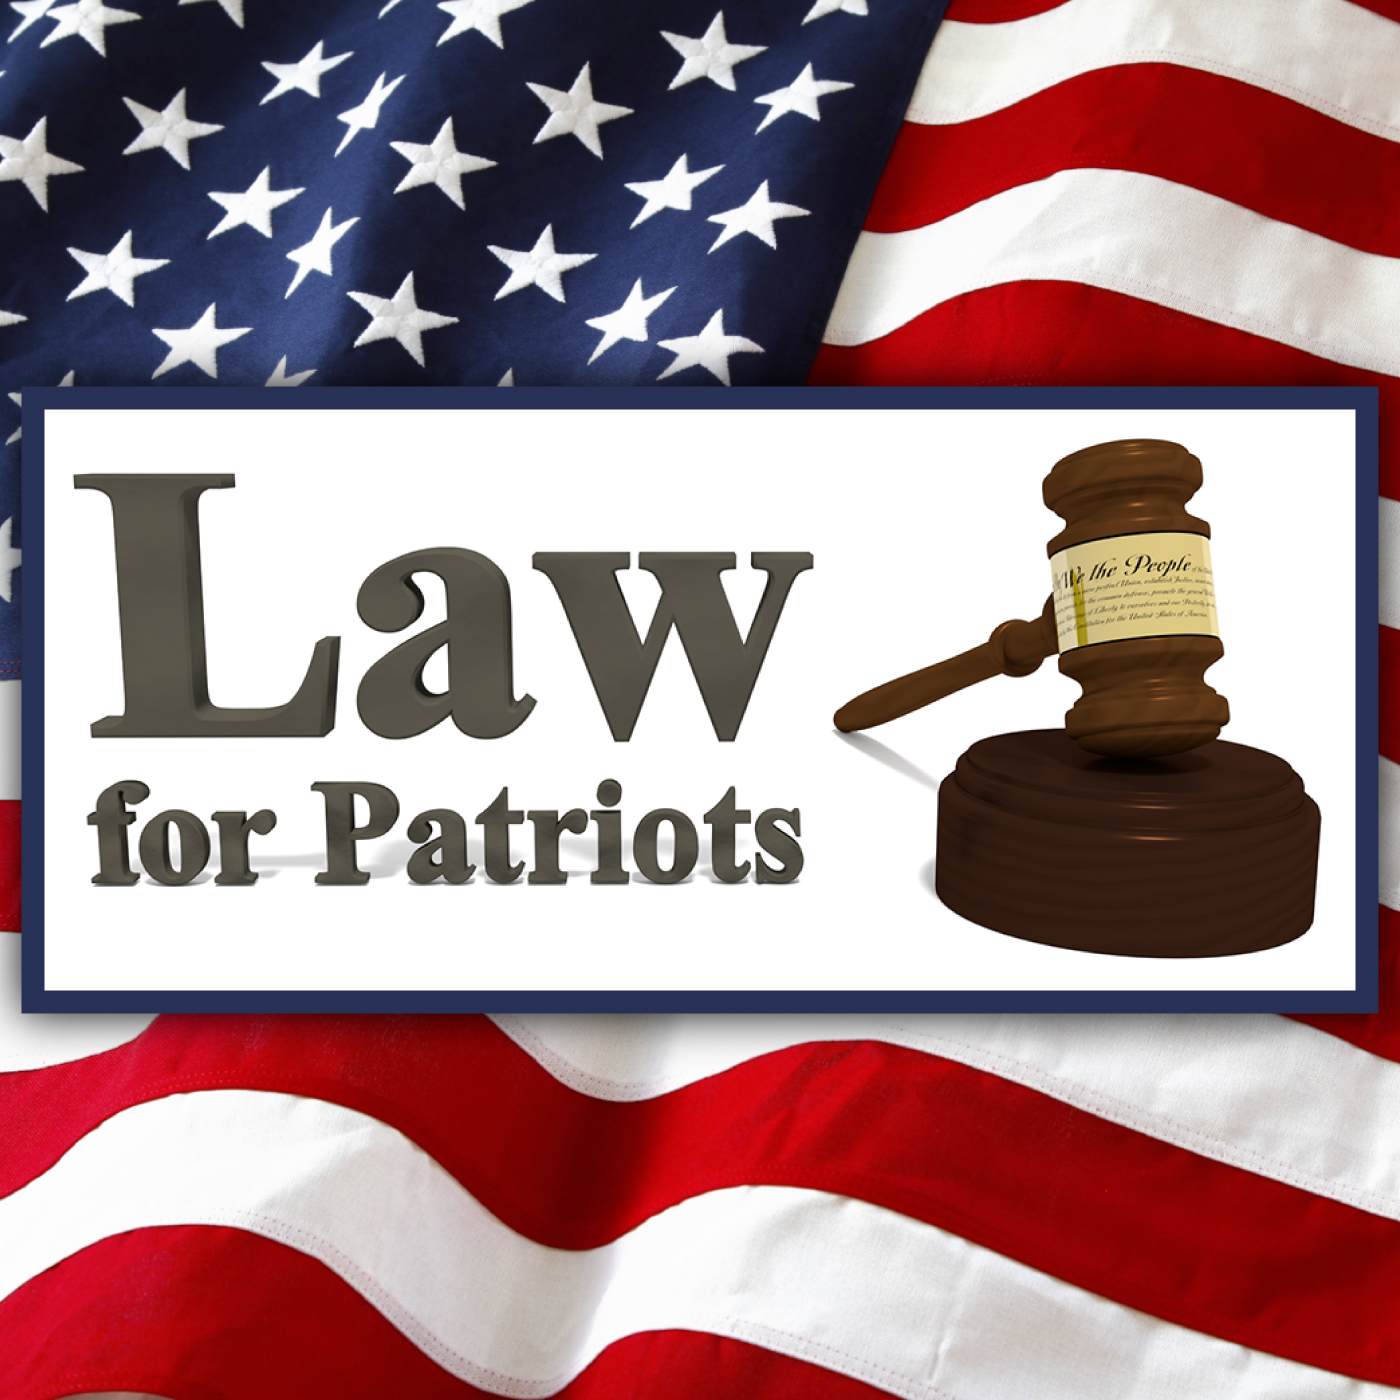 Law for Patriots